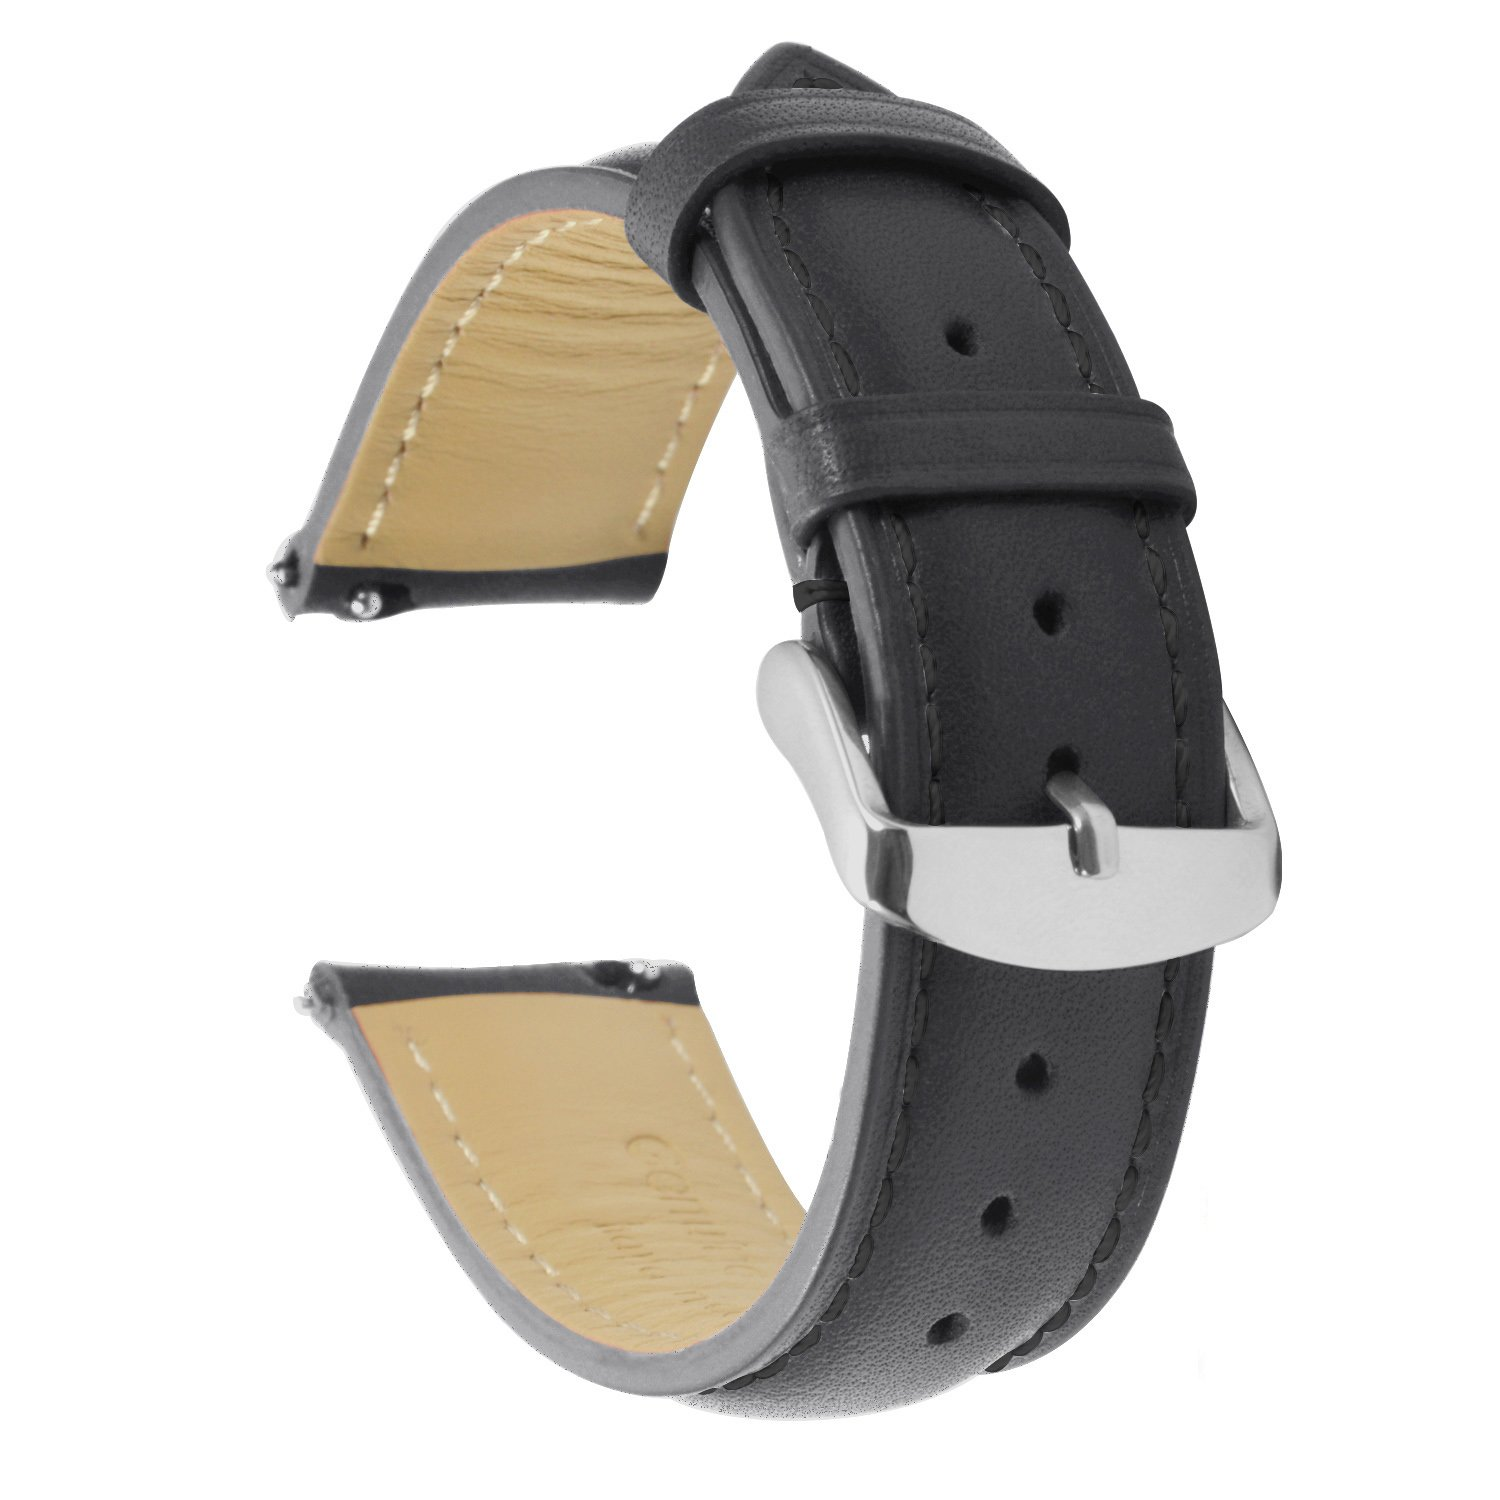 Quick Release Watch Band 18mm, Leather Black Replacement Watch Strap Genuine Polished Watch Clasp Buckle Padded Super Soft (18mm 20mm 22mm)